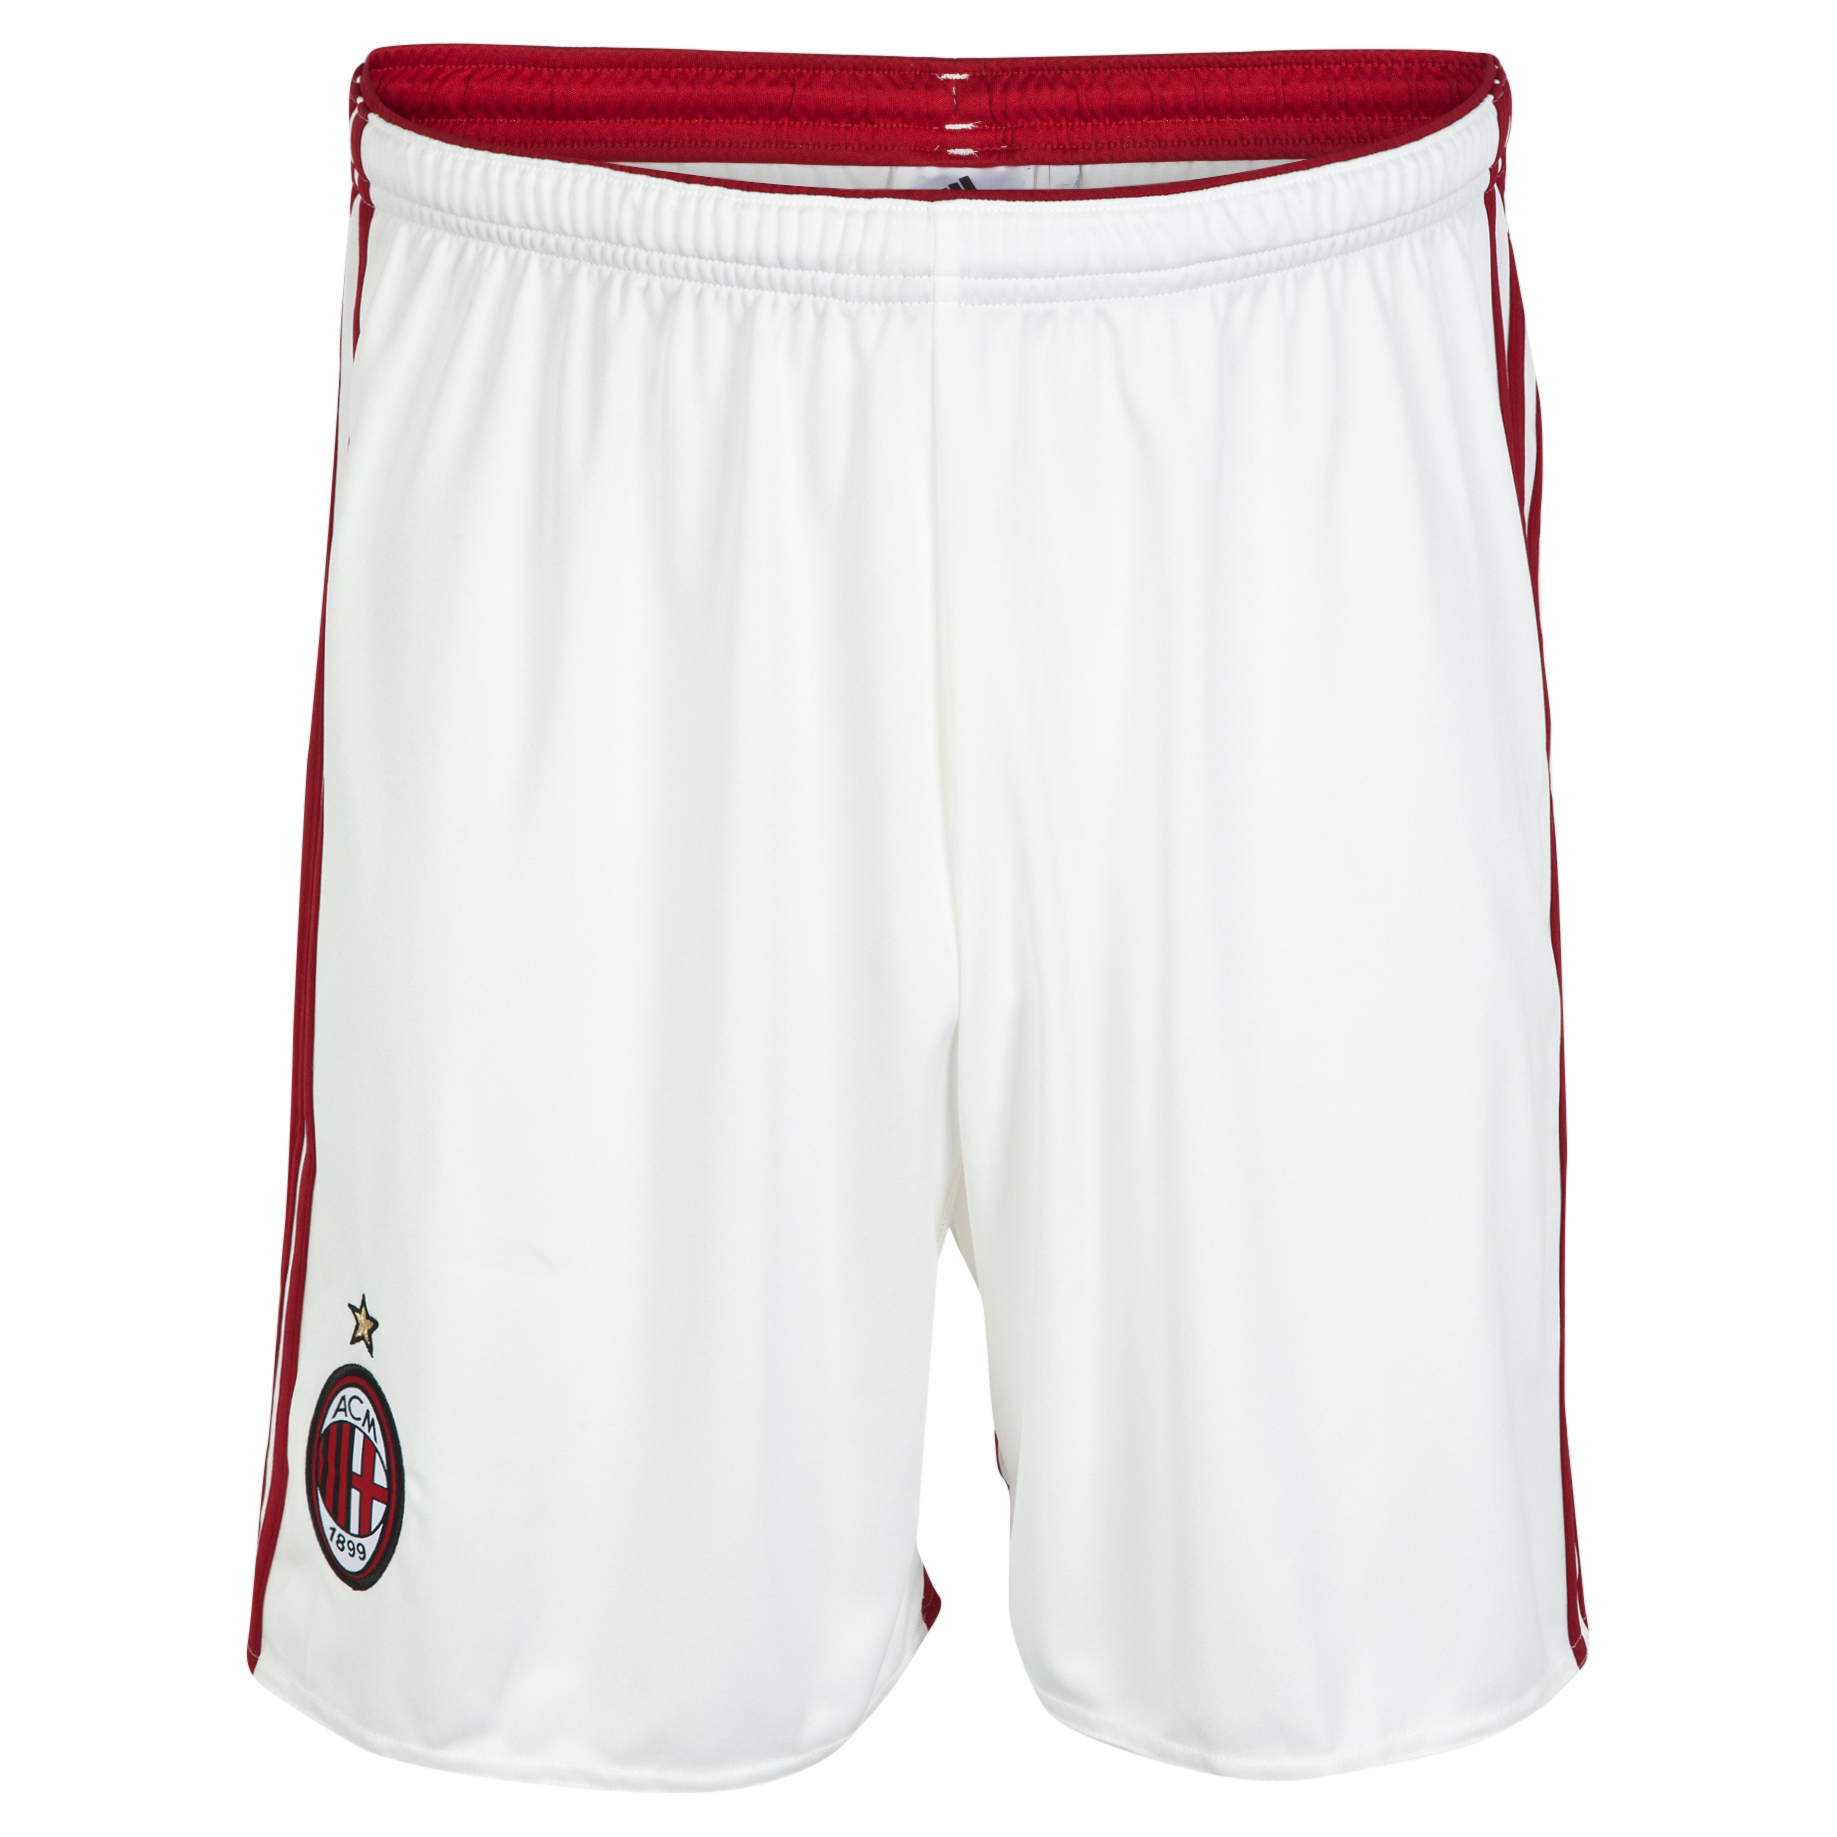 AC Milan Home Short 2014/15